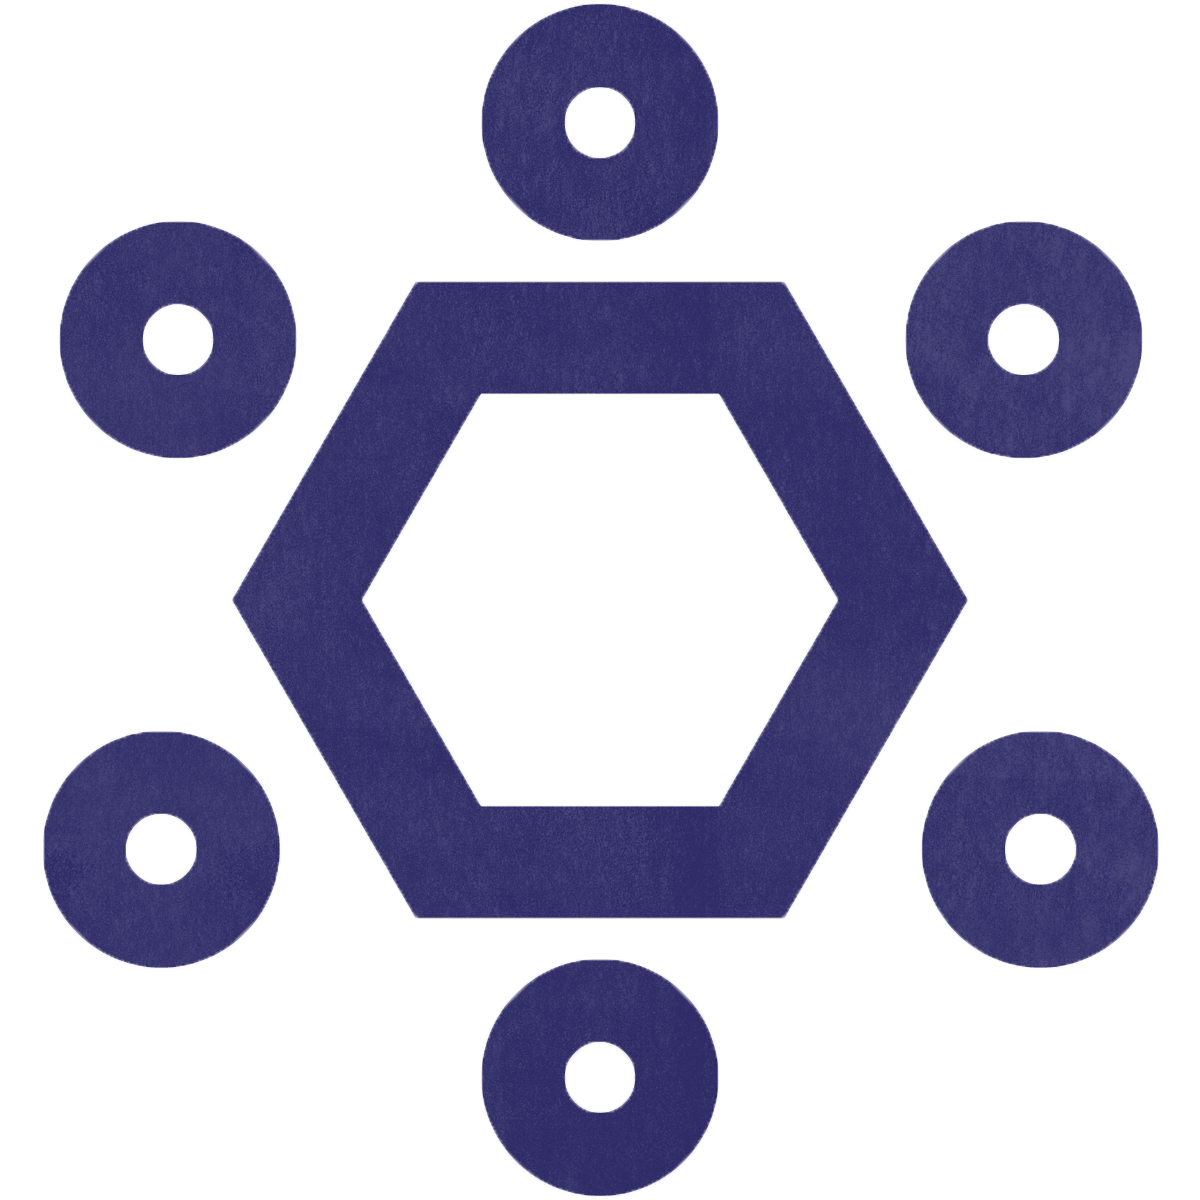 A purple hexagon with circles on each side showing teamwork as a core value.